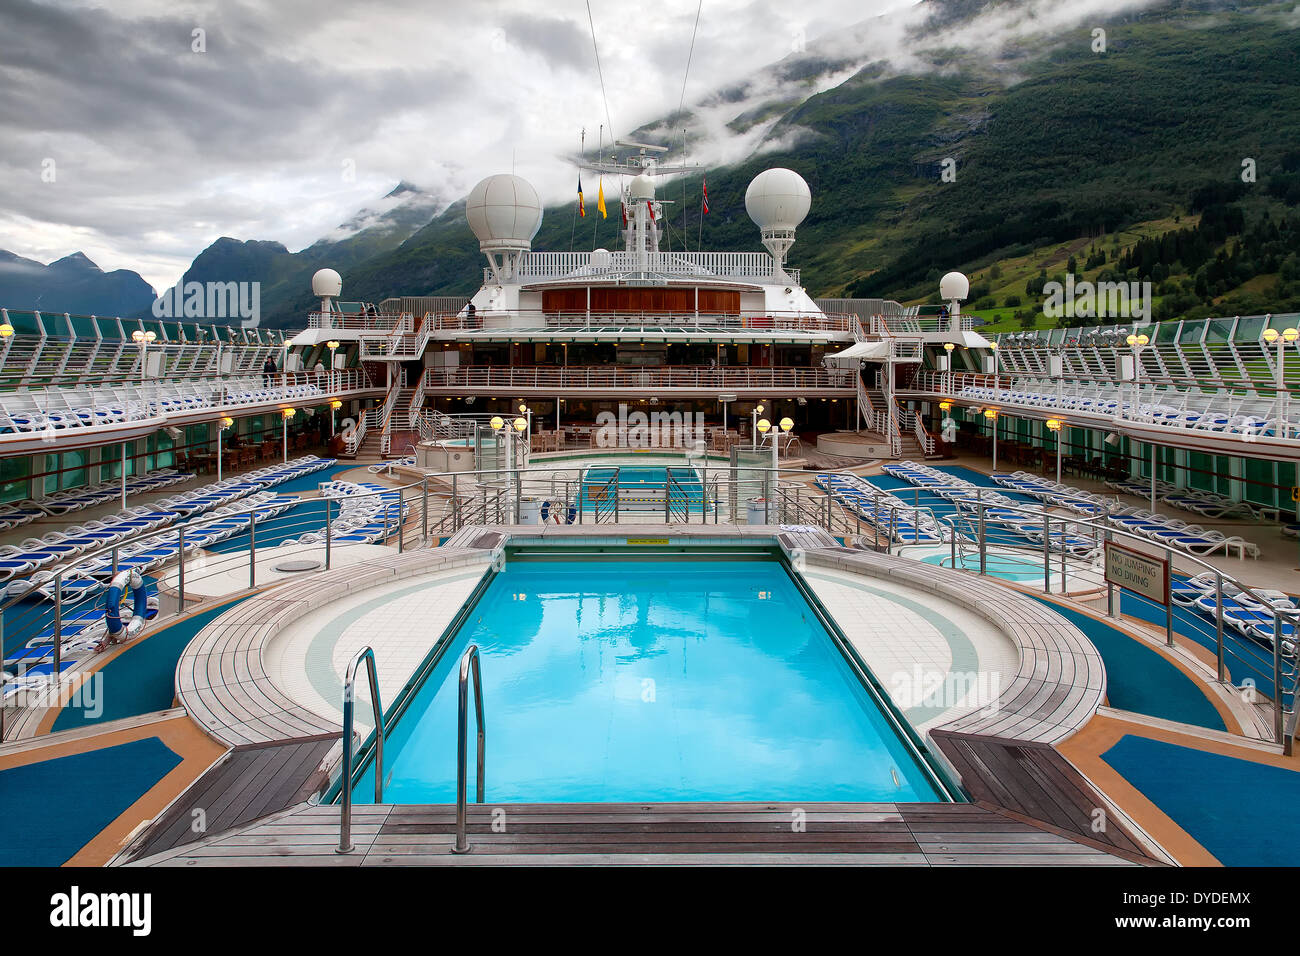 Cruise Ship Swimming Pool And Mountains Stock Photo Royalty Free Image 68523754 Alamy